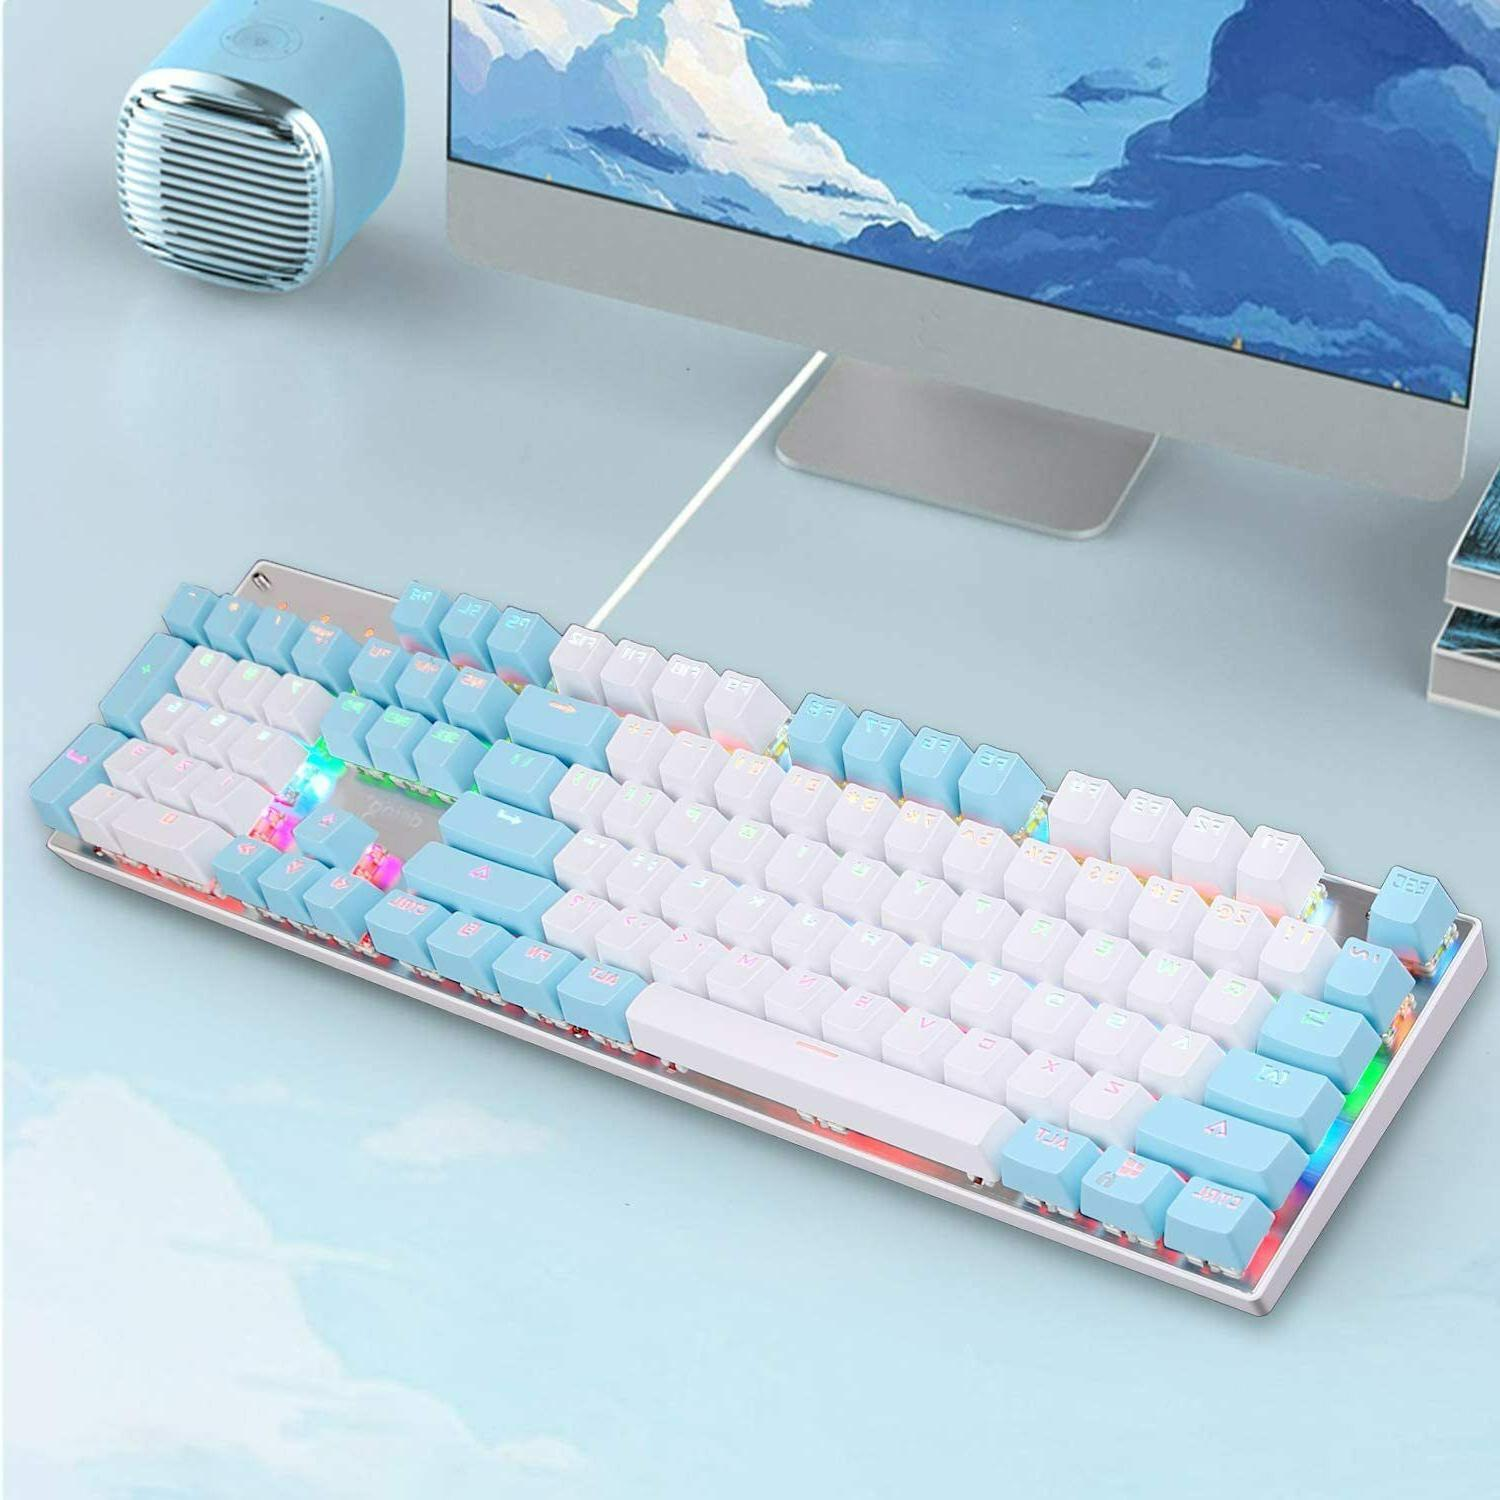 Wired Gaming Keyboard Blue Switch LED Backlit For Mac